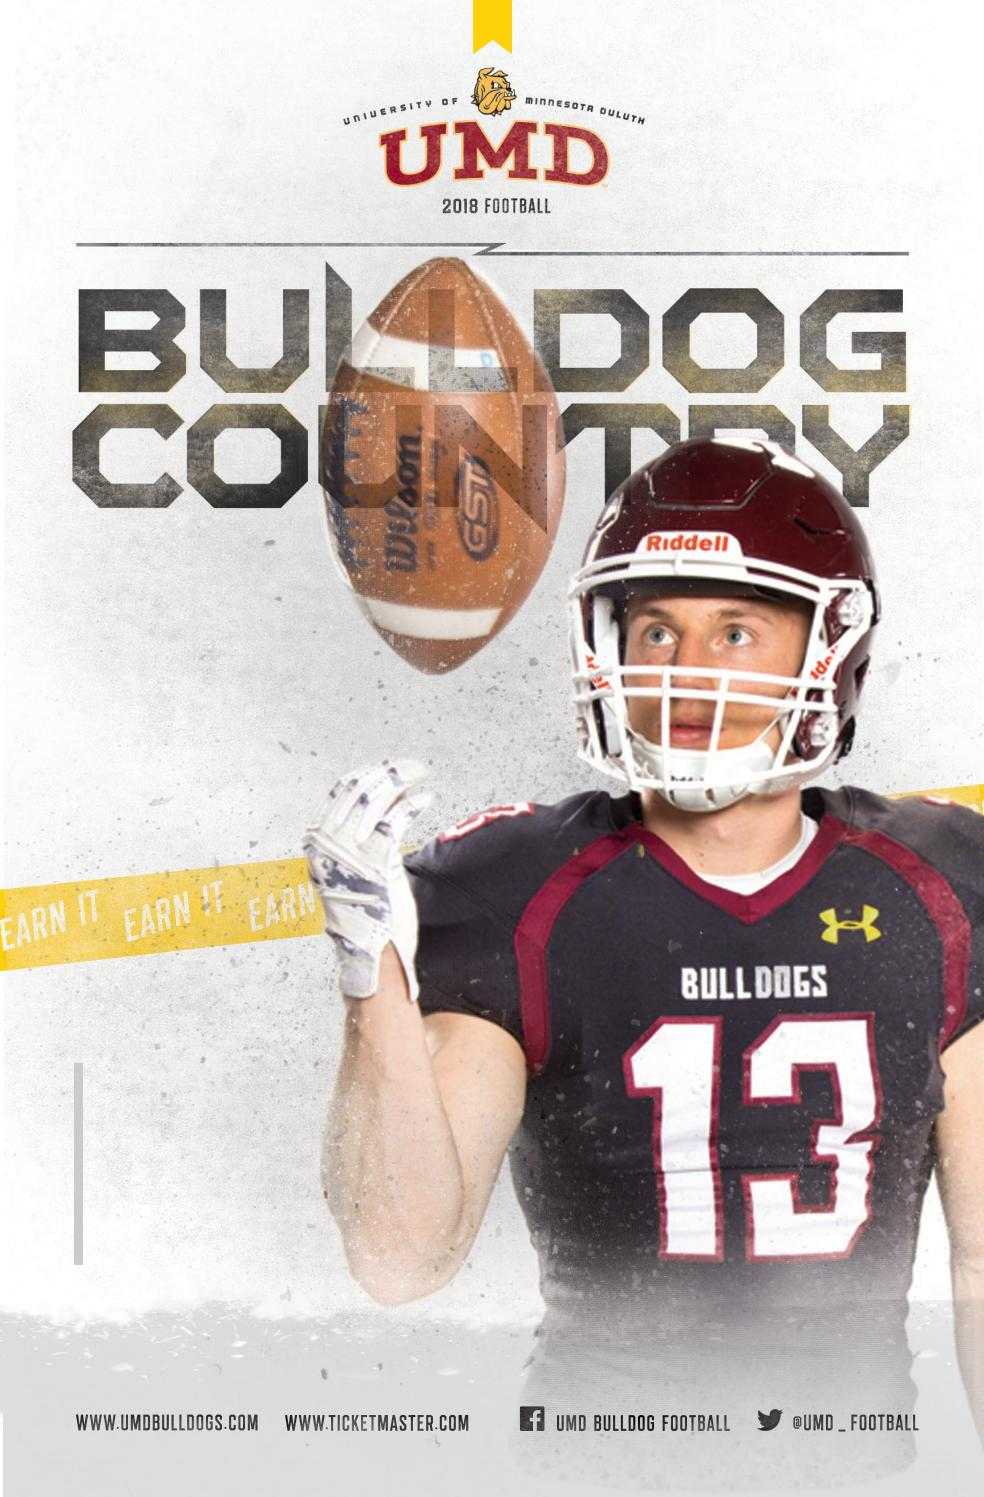 03a25d6e 2018 UMD Football Media Guide by UMD Bulldogs - issuu